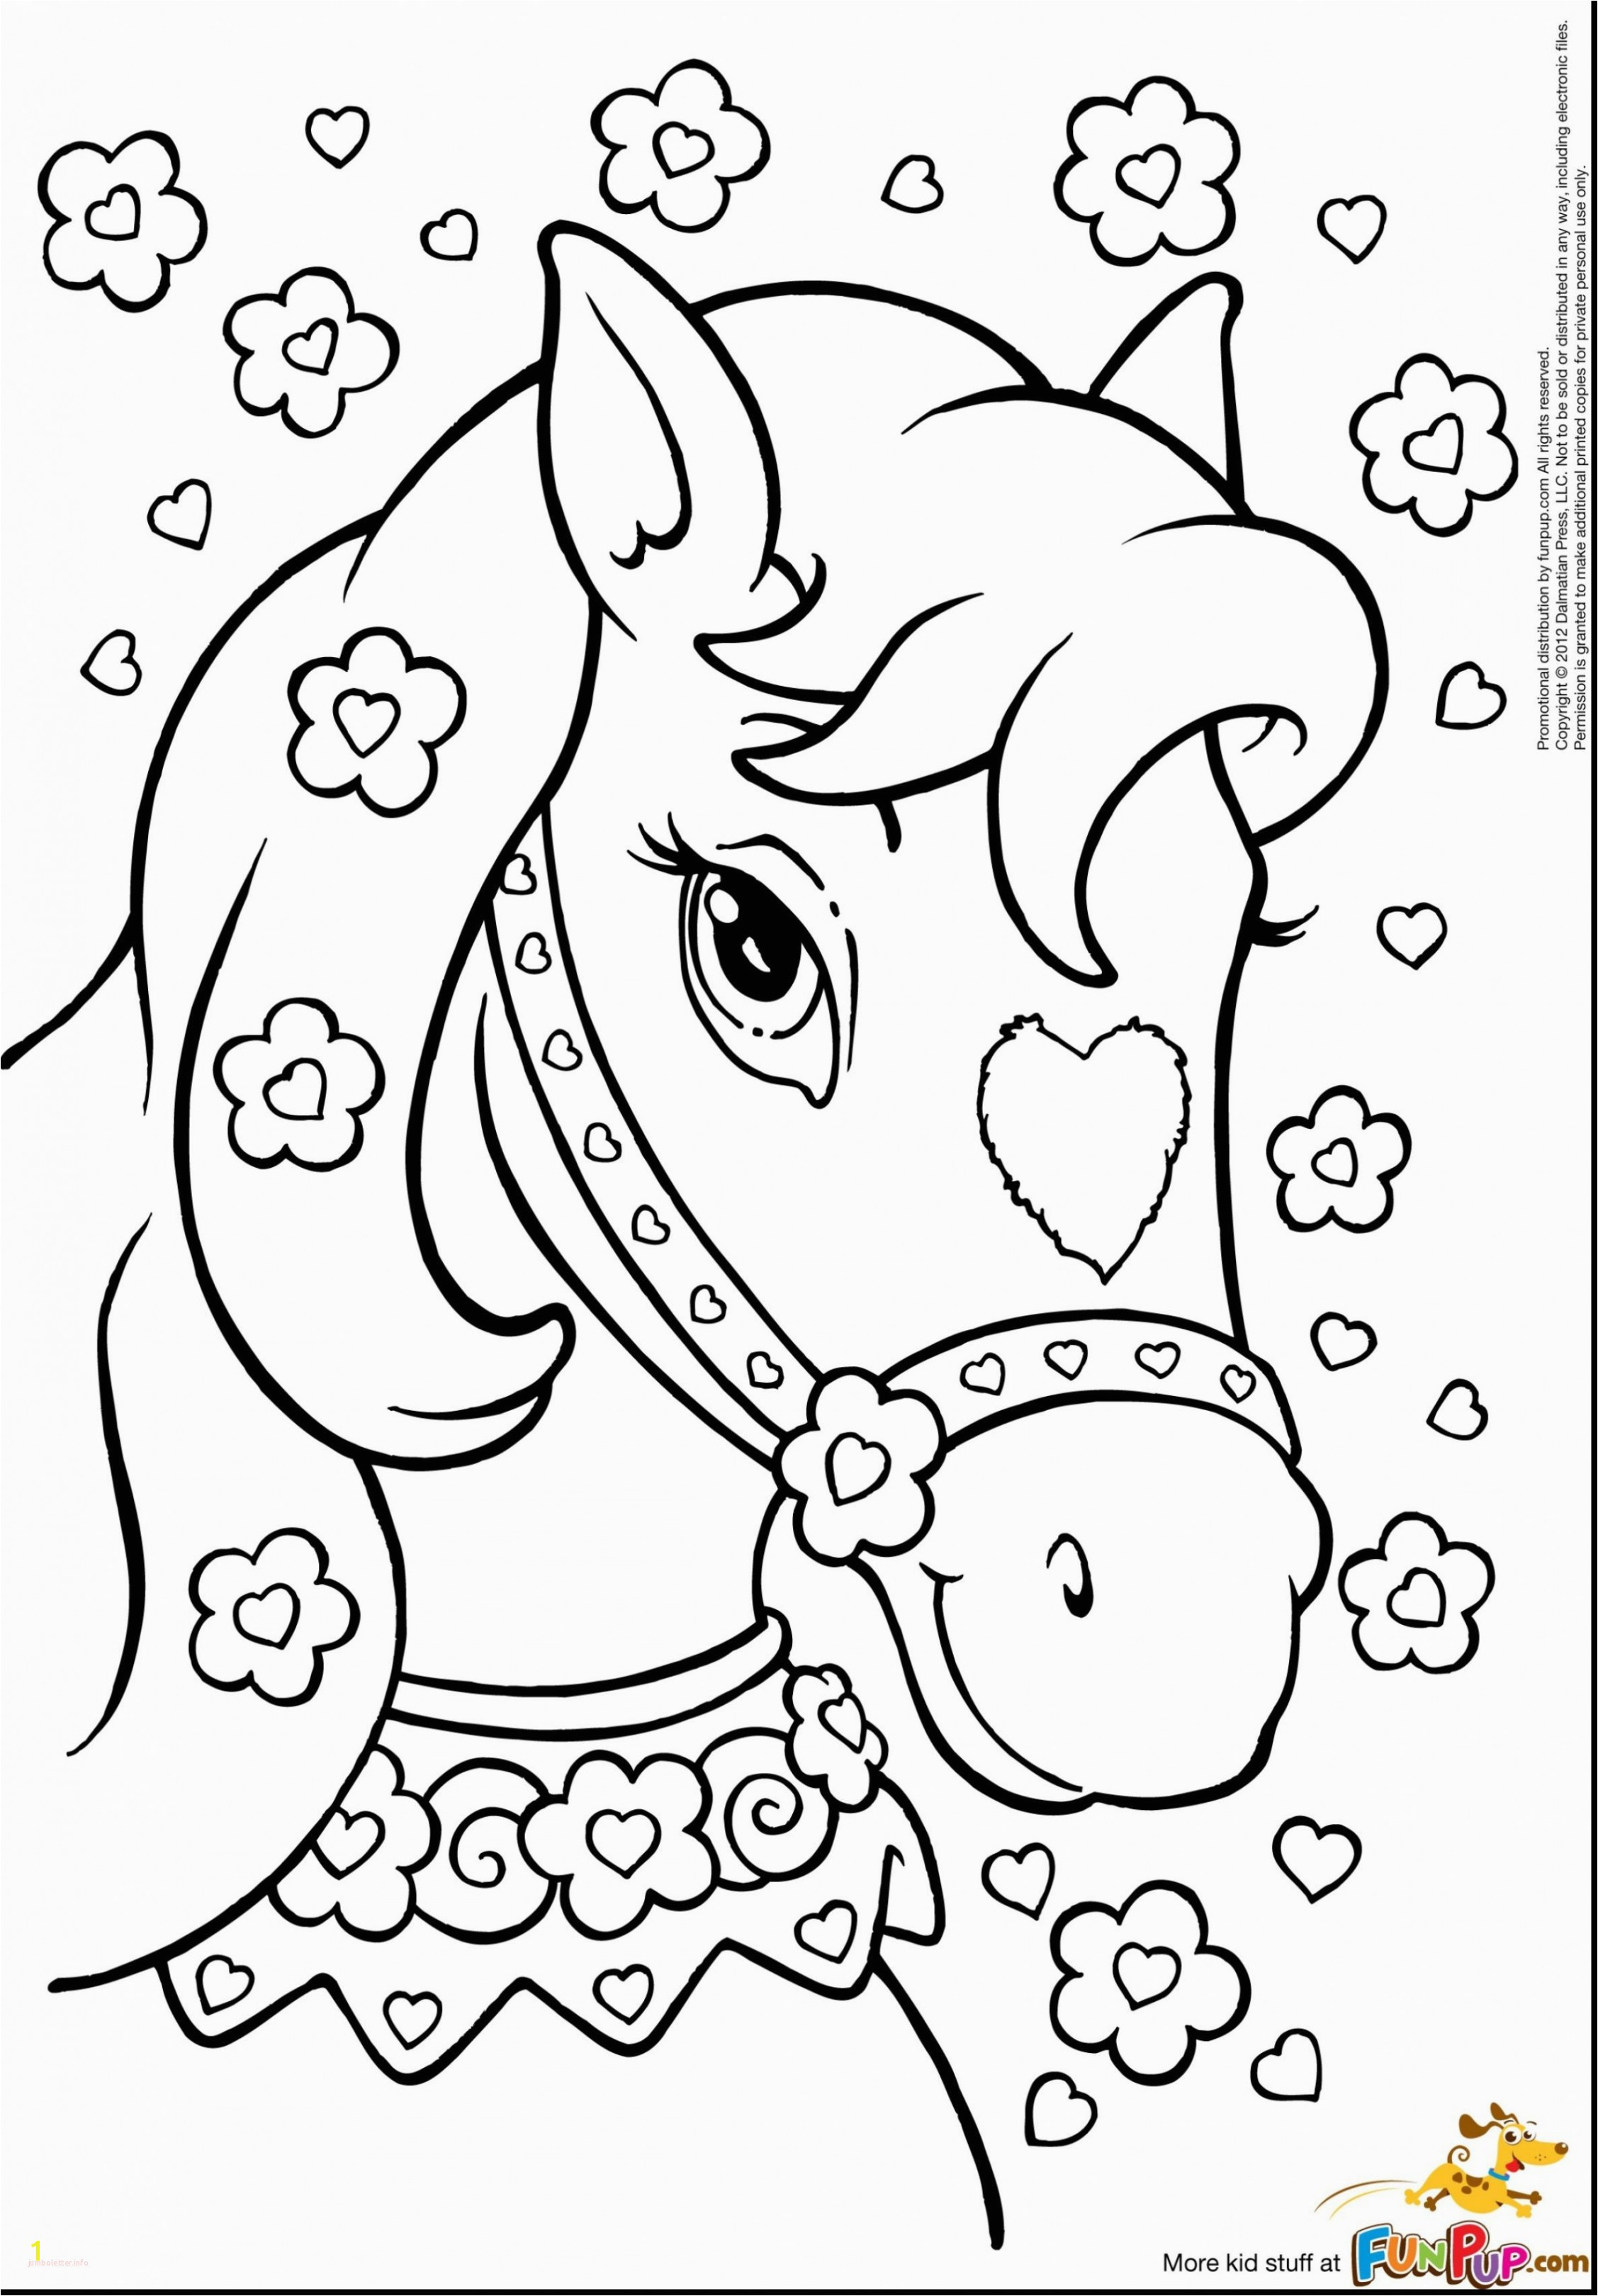 Kids Coloring Pages For Girls Princess Crown Drawings Printable line Printable 2018